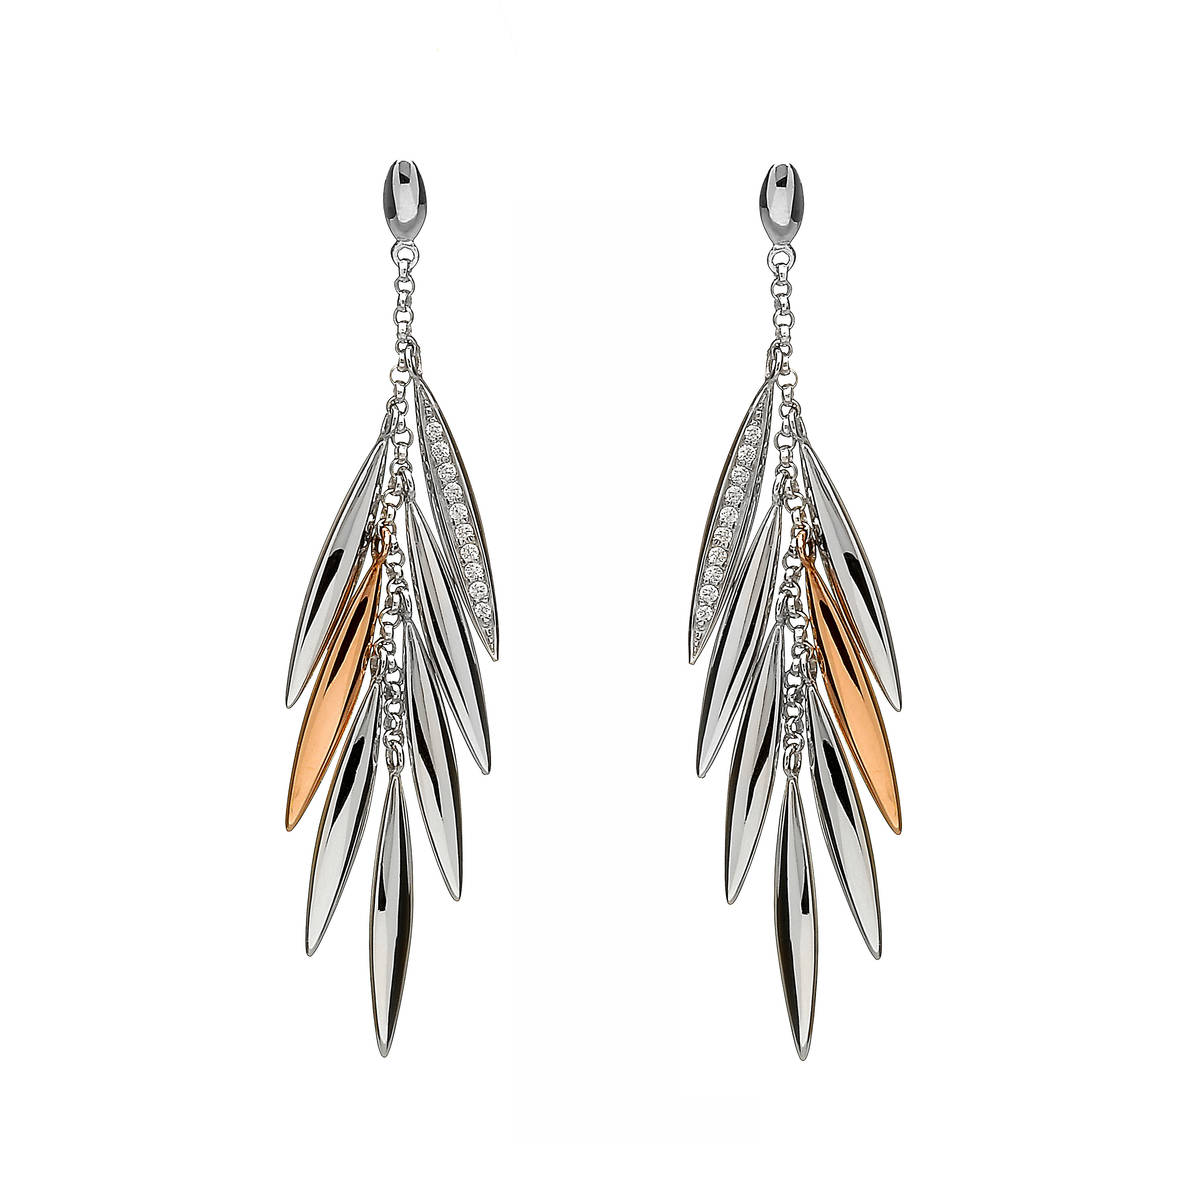 House of Lor silver/rose gold cz feather drop earrings1 feather on each made from rare Irish gold